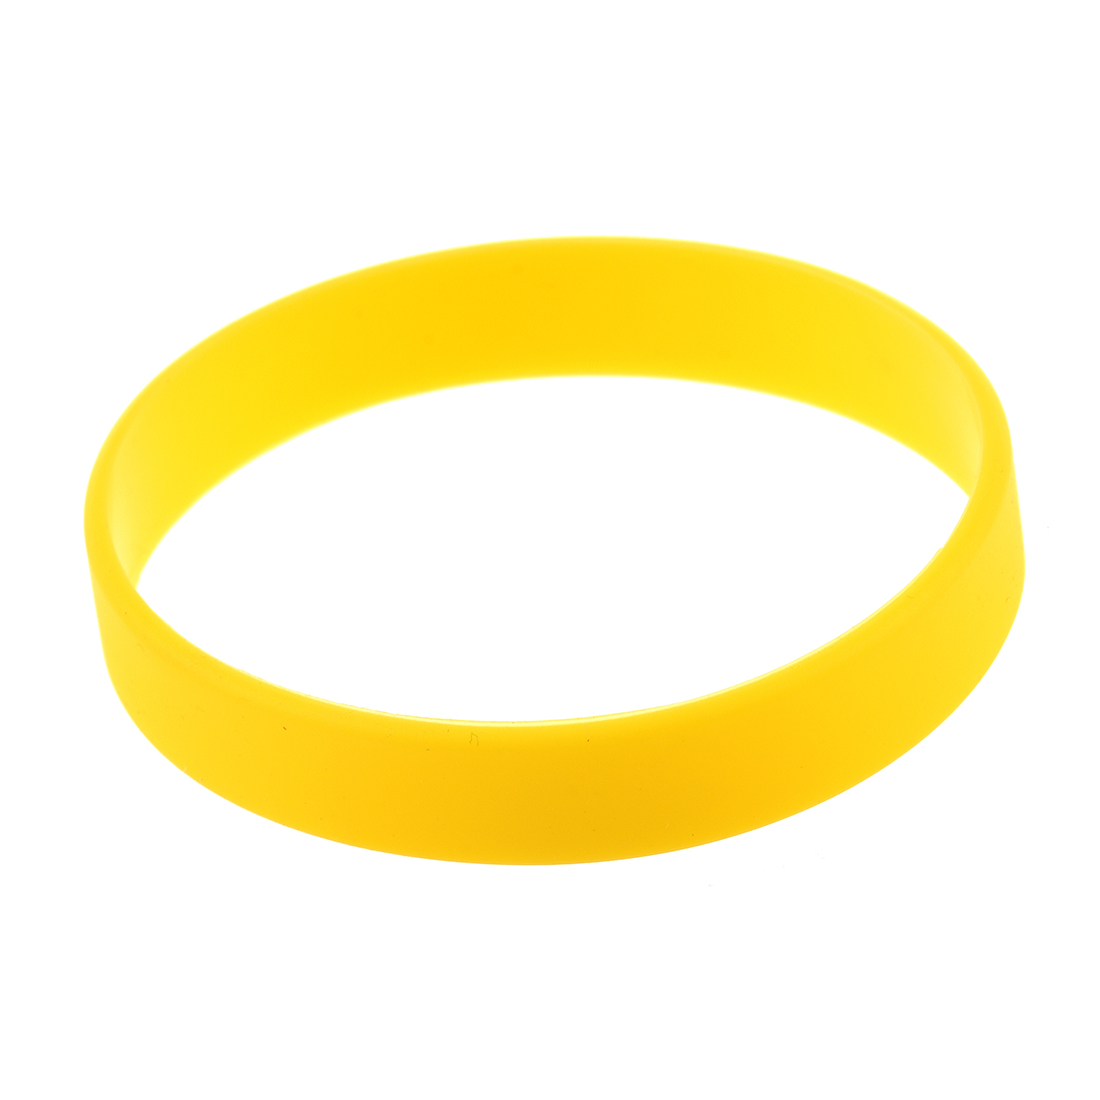 Rubber band bracelets pictures of